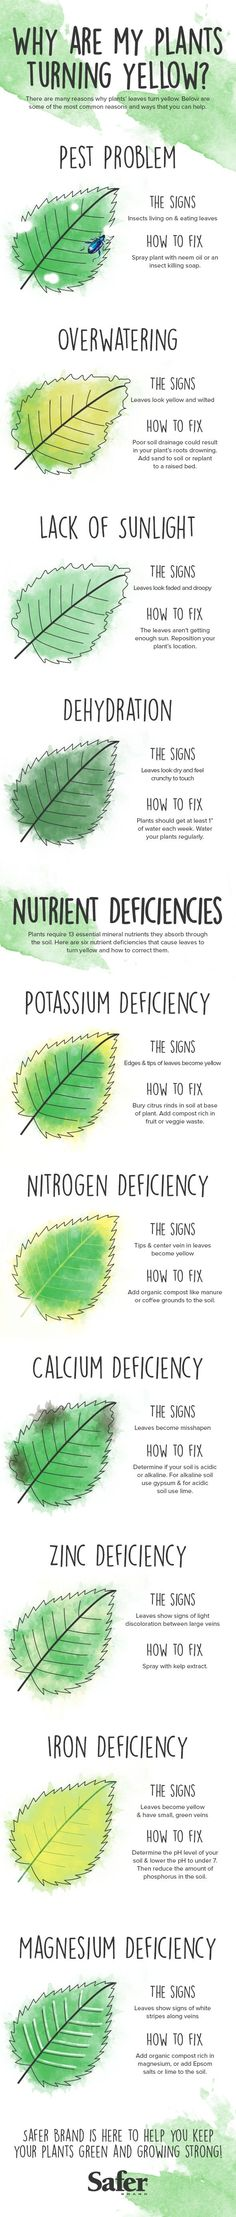 Why are my plants turning yellow? If your vegetable garden or house plants have gone from verdant to flavescent, it could be a sign of health issues like too much water or too few nutrients. A new infographic offers tips for getting to the root of the problem.  #gardening #plant_issues How To Plant Flowers, How To Plant Cactus, How To Grow Sunflowers, How To Plant Tomatoes, Tomato Plant Food, How To Grow Plants, Growing Tomato Plants, Planting Sunflowers, Growing Greens